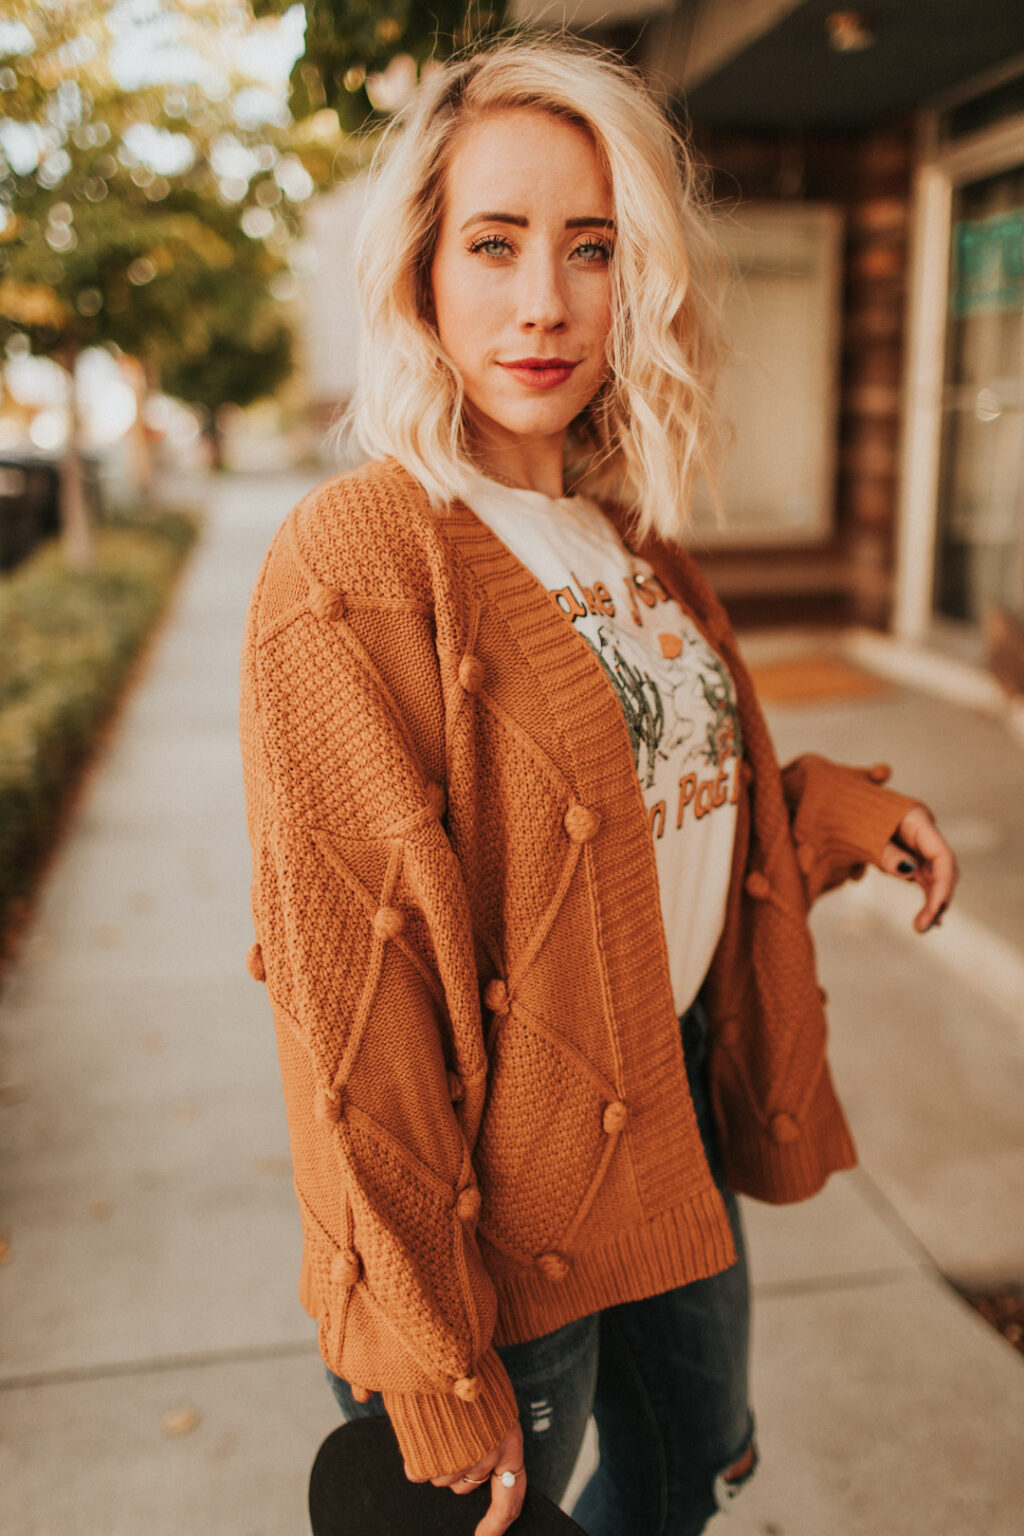 Love this sweater with the pom pom detail. Such warm tones perfect for fall and winter and anytime you need to be cozy!